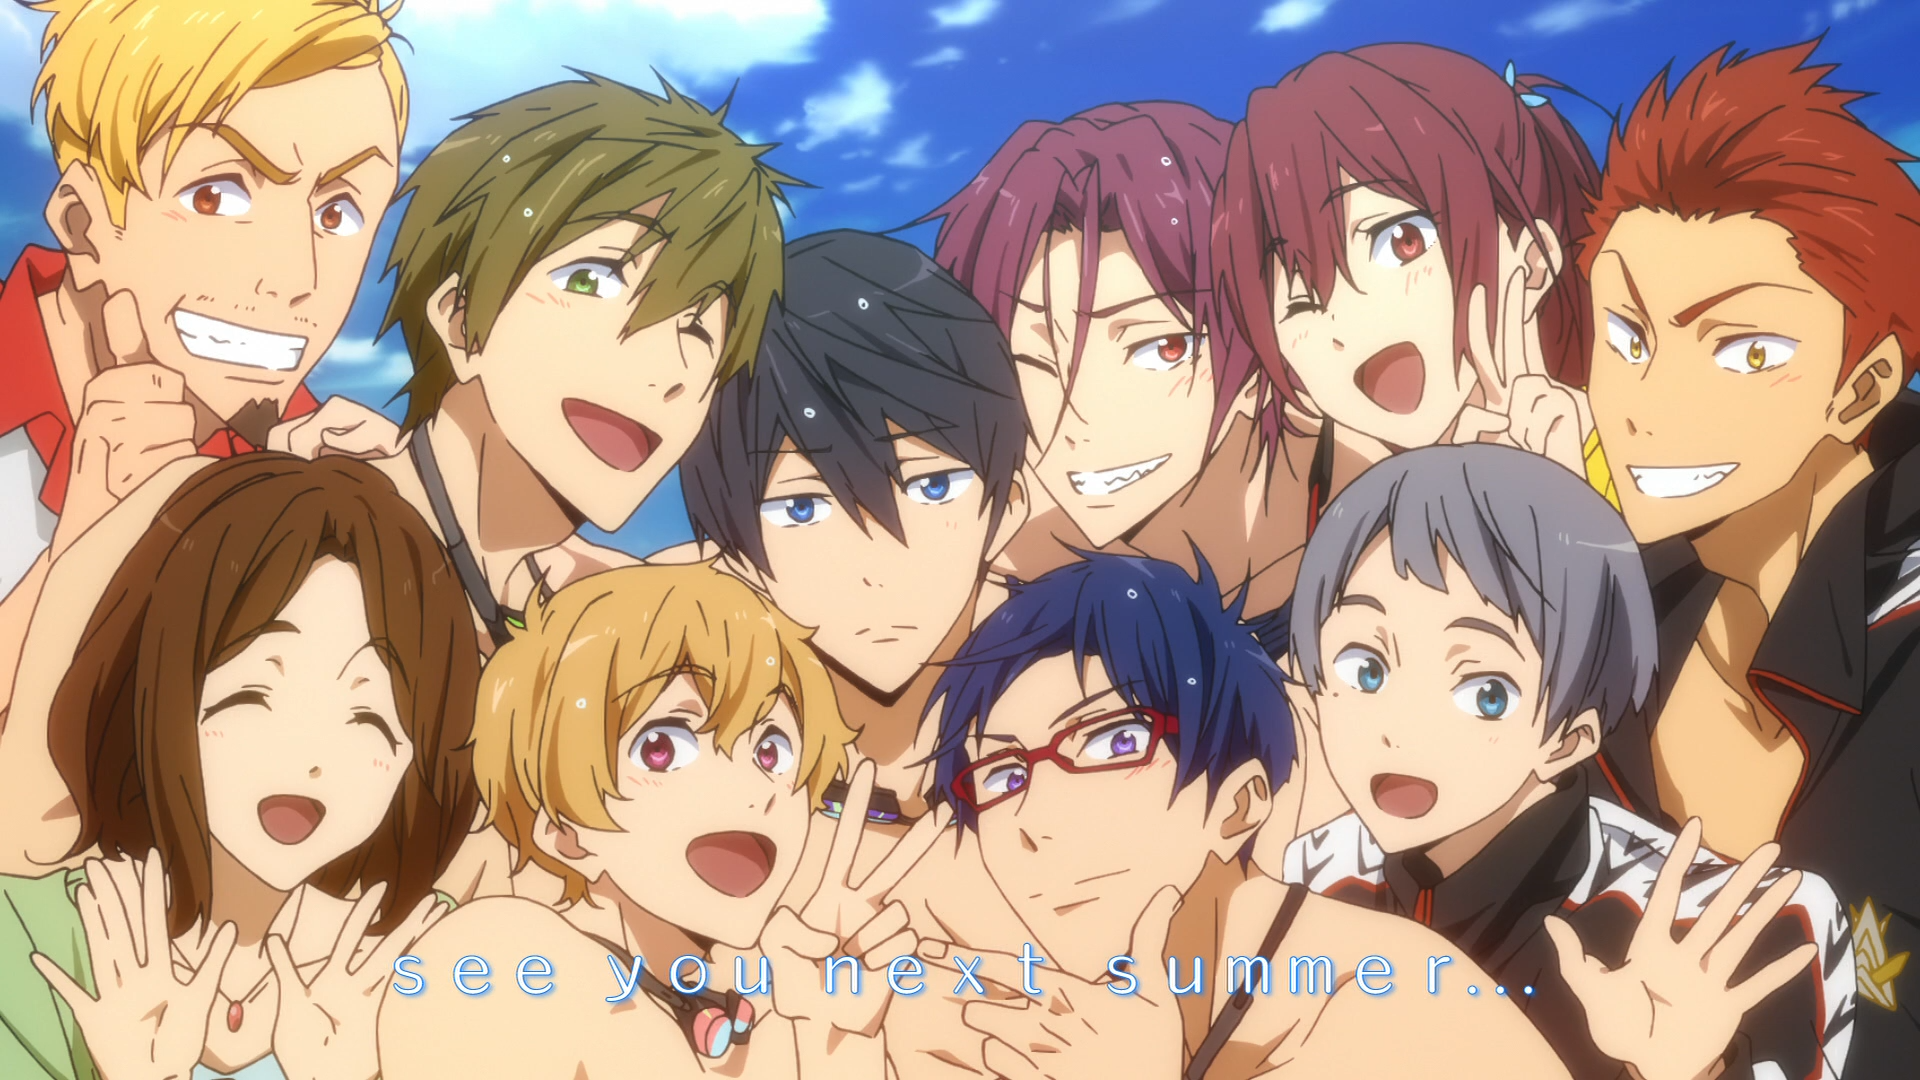 Archivo:Free! Episode 12 End Card.png